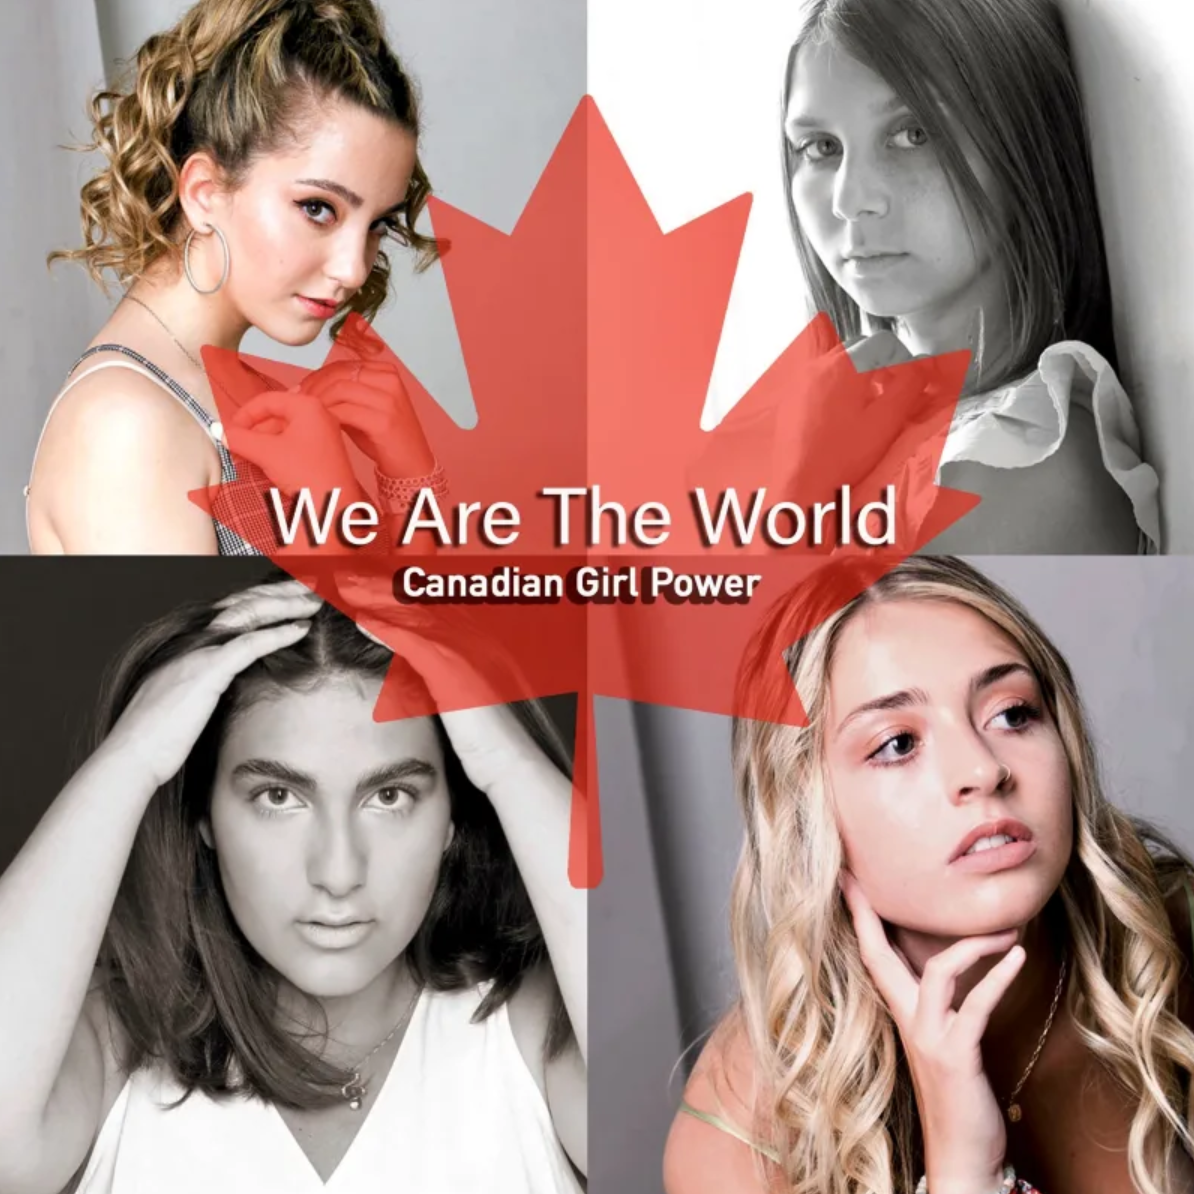 """Music Group, Canadian Girl Power have New Single """"We Are the World"""" Censored by Google"""